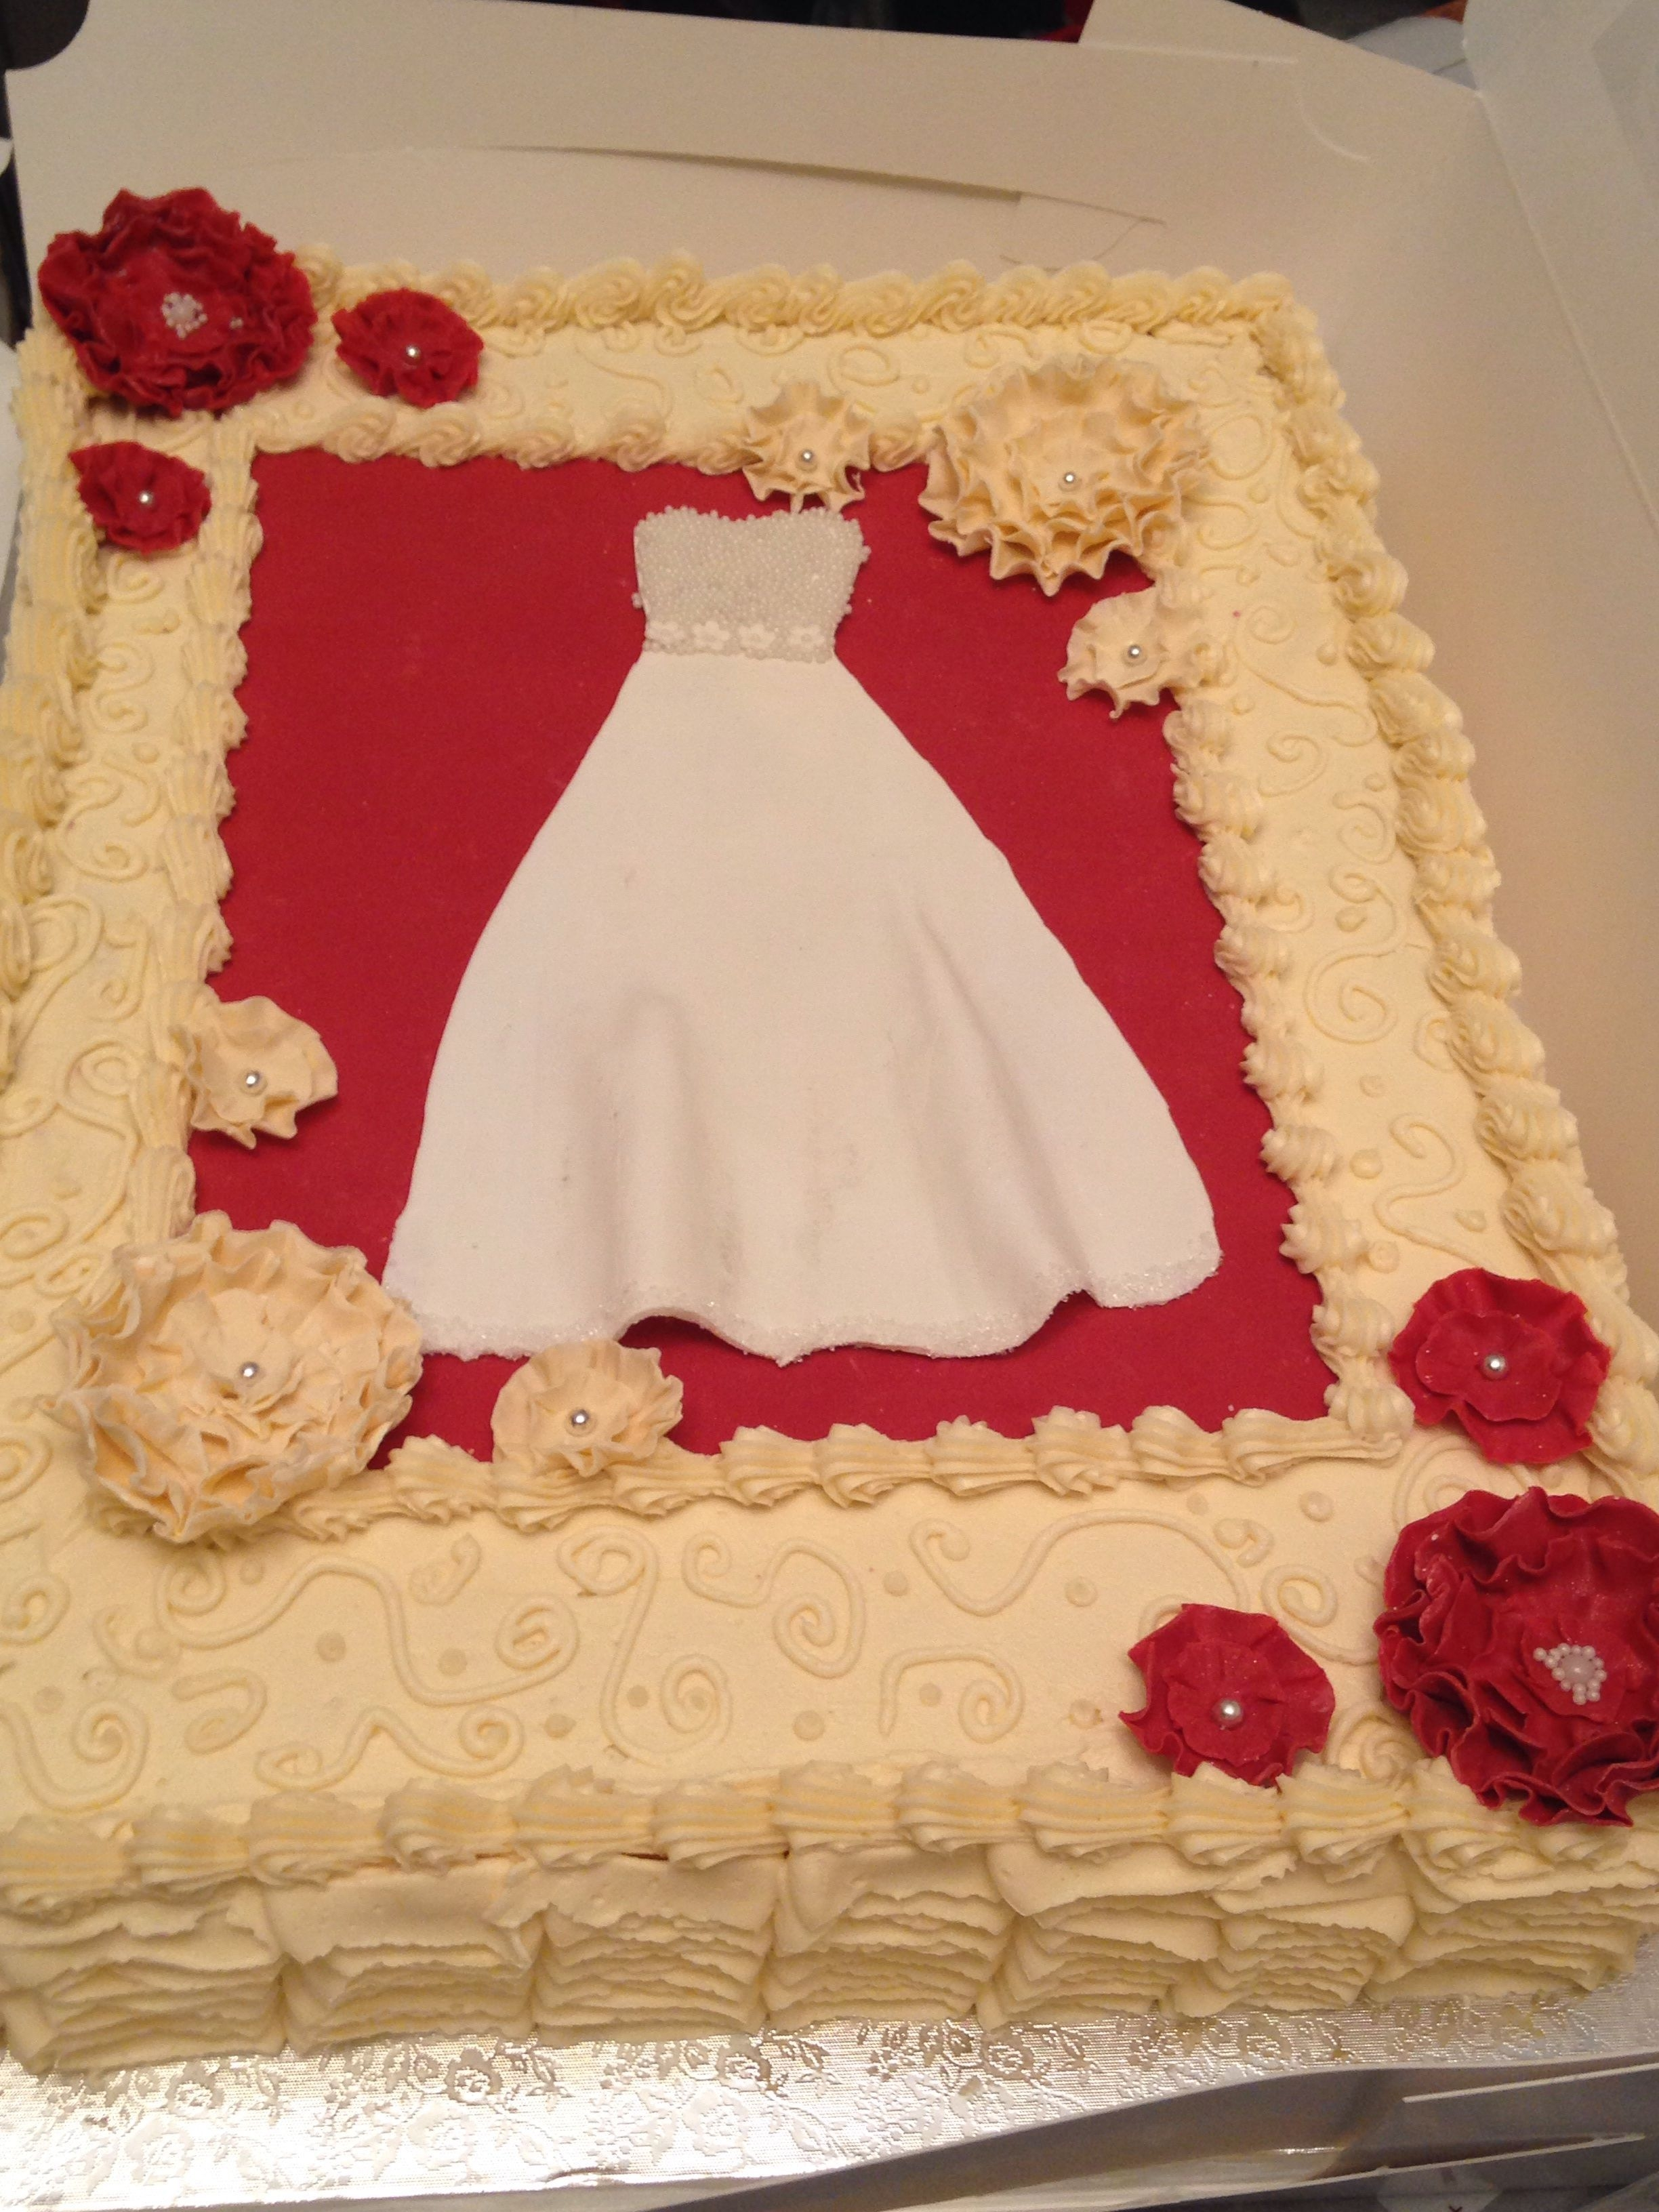 Bridal Shower Cake Red Velvet Cake And Cream Cheese Icing 12 Sheet Cake